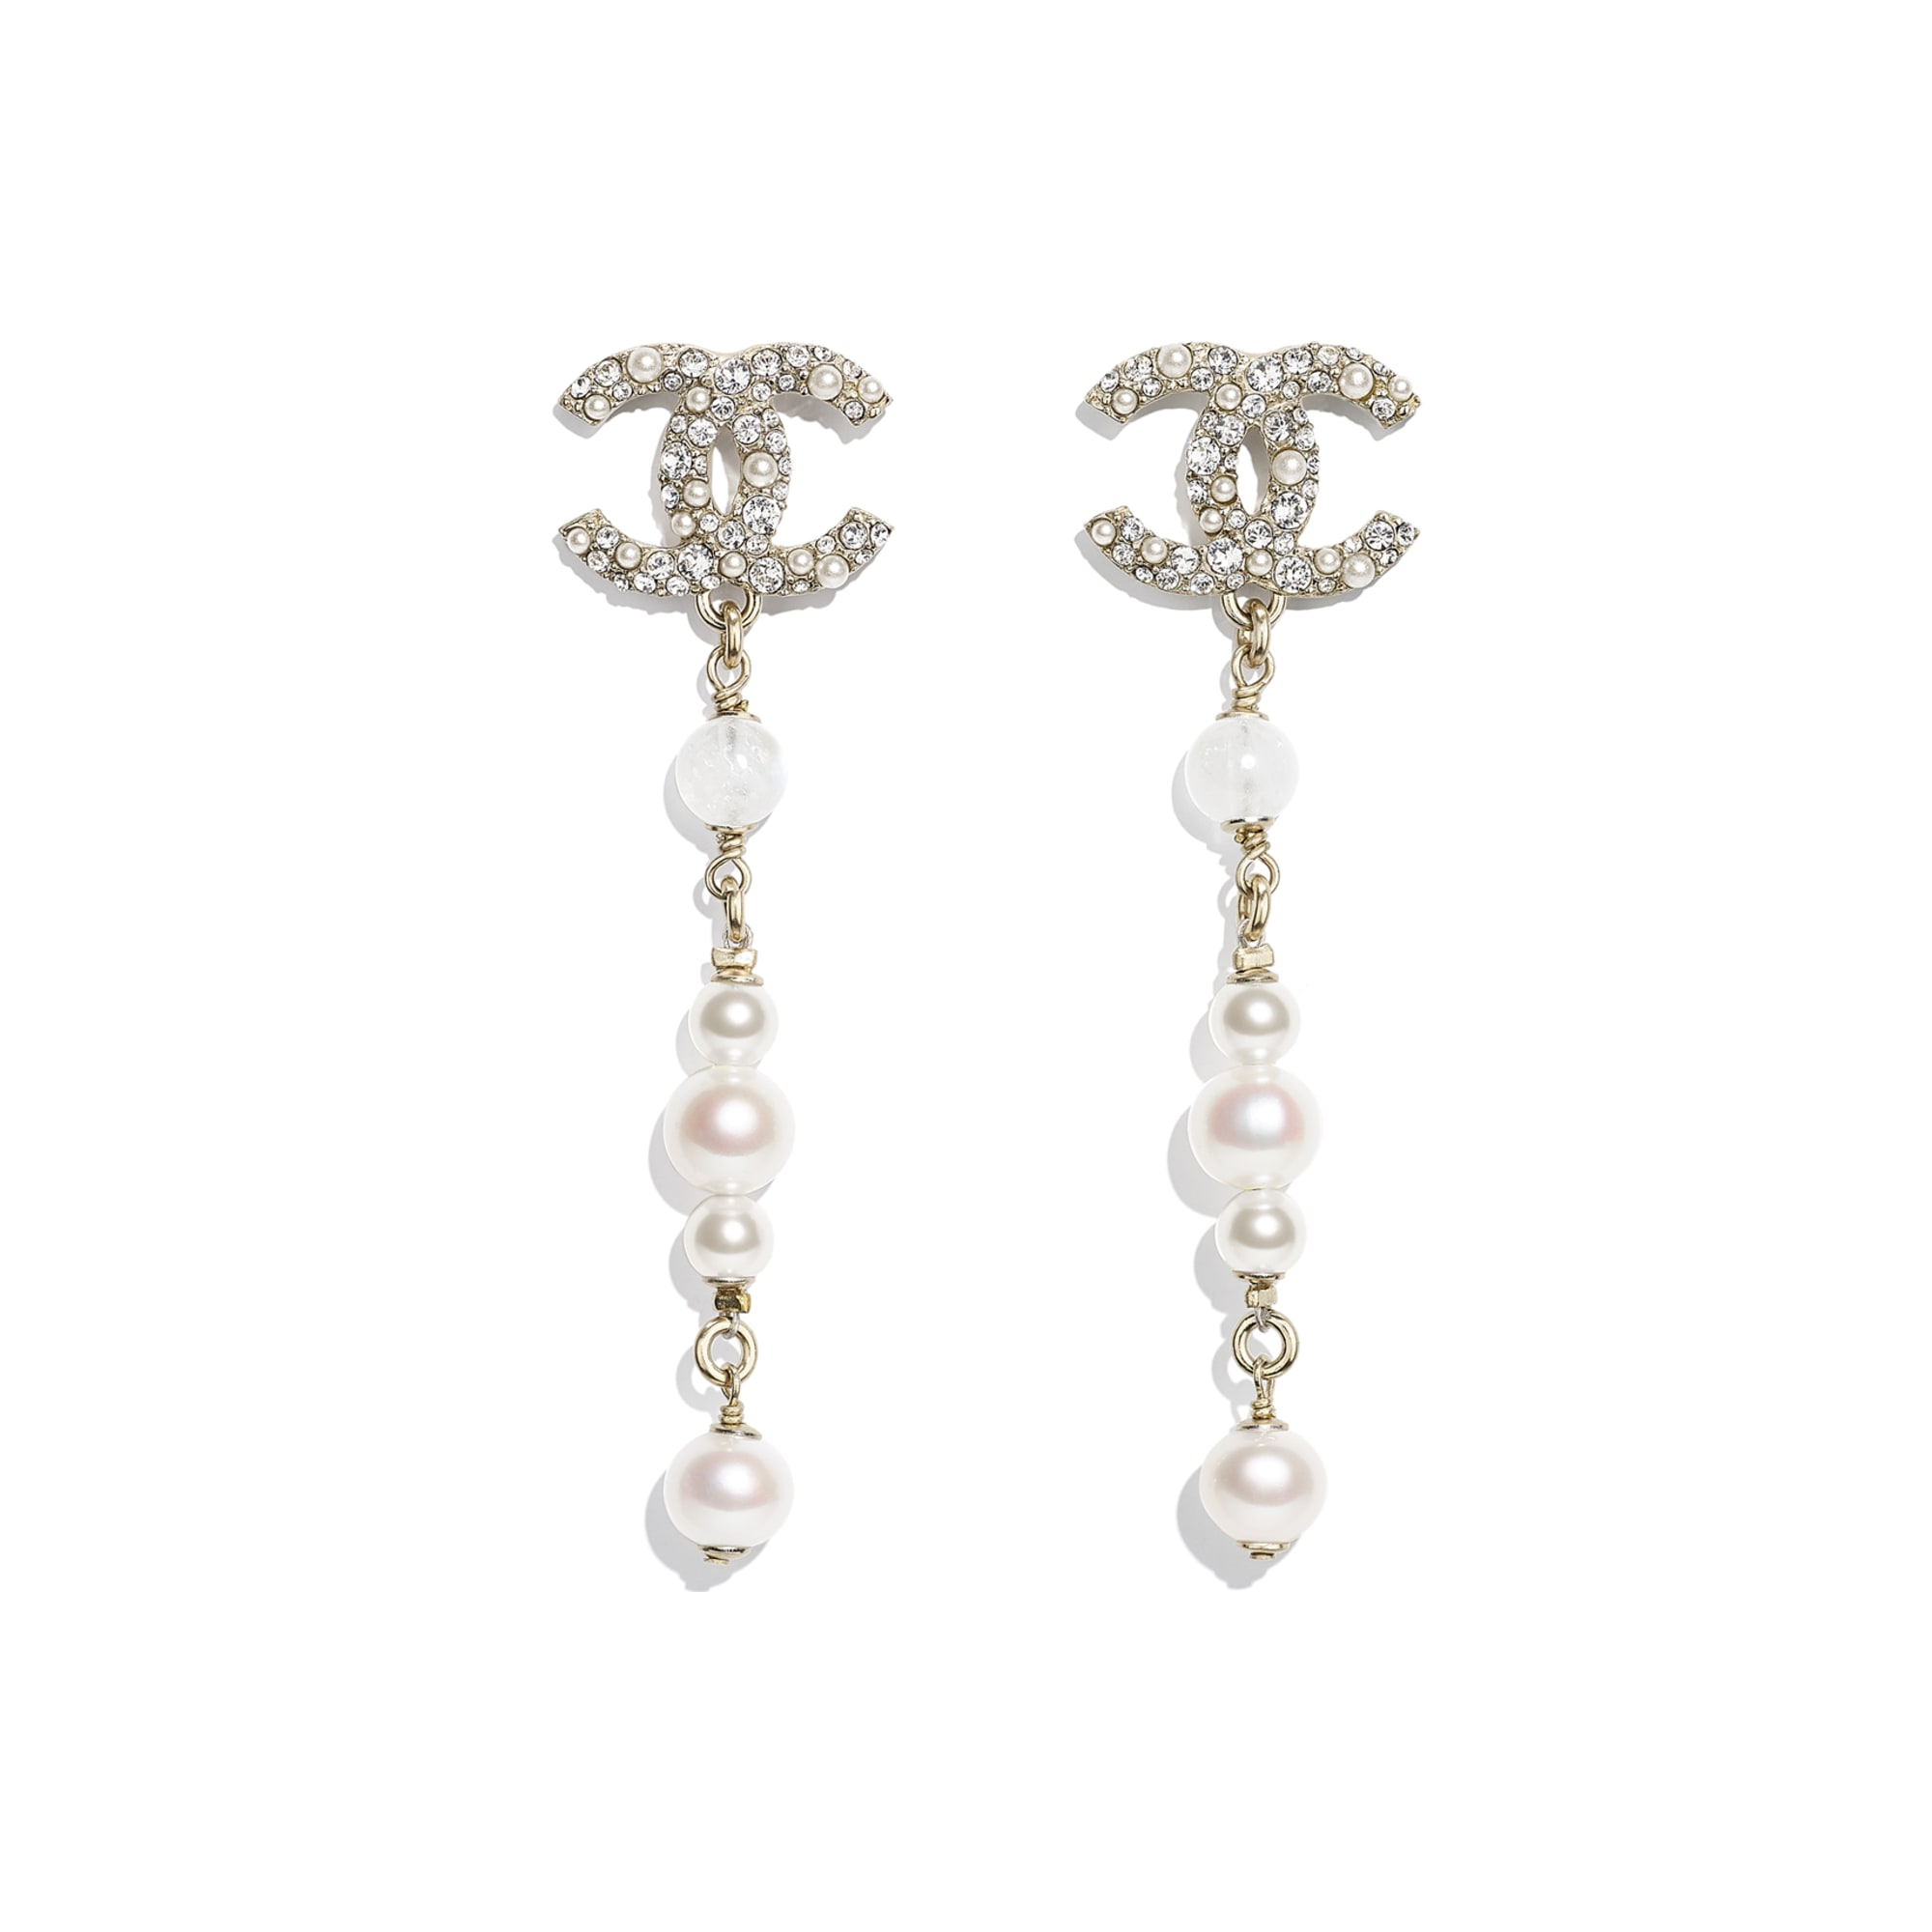 Earrings - Gold, Pearly White & Crystal - Metal, Natural Stones, Cultured Freshwater Pearls, Glass Pearls & Diamanté  - CHANEL - Default view - see standard sized version